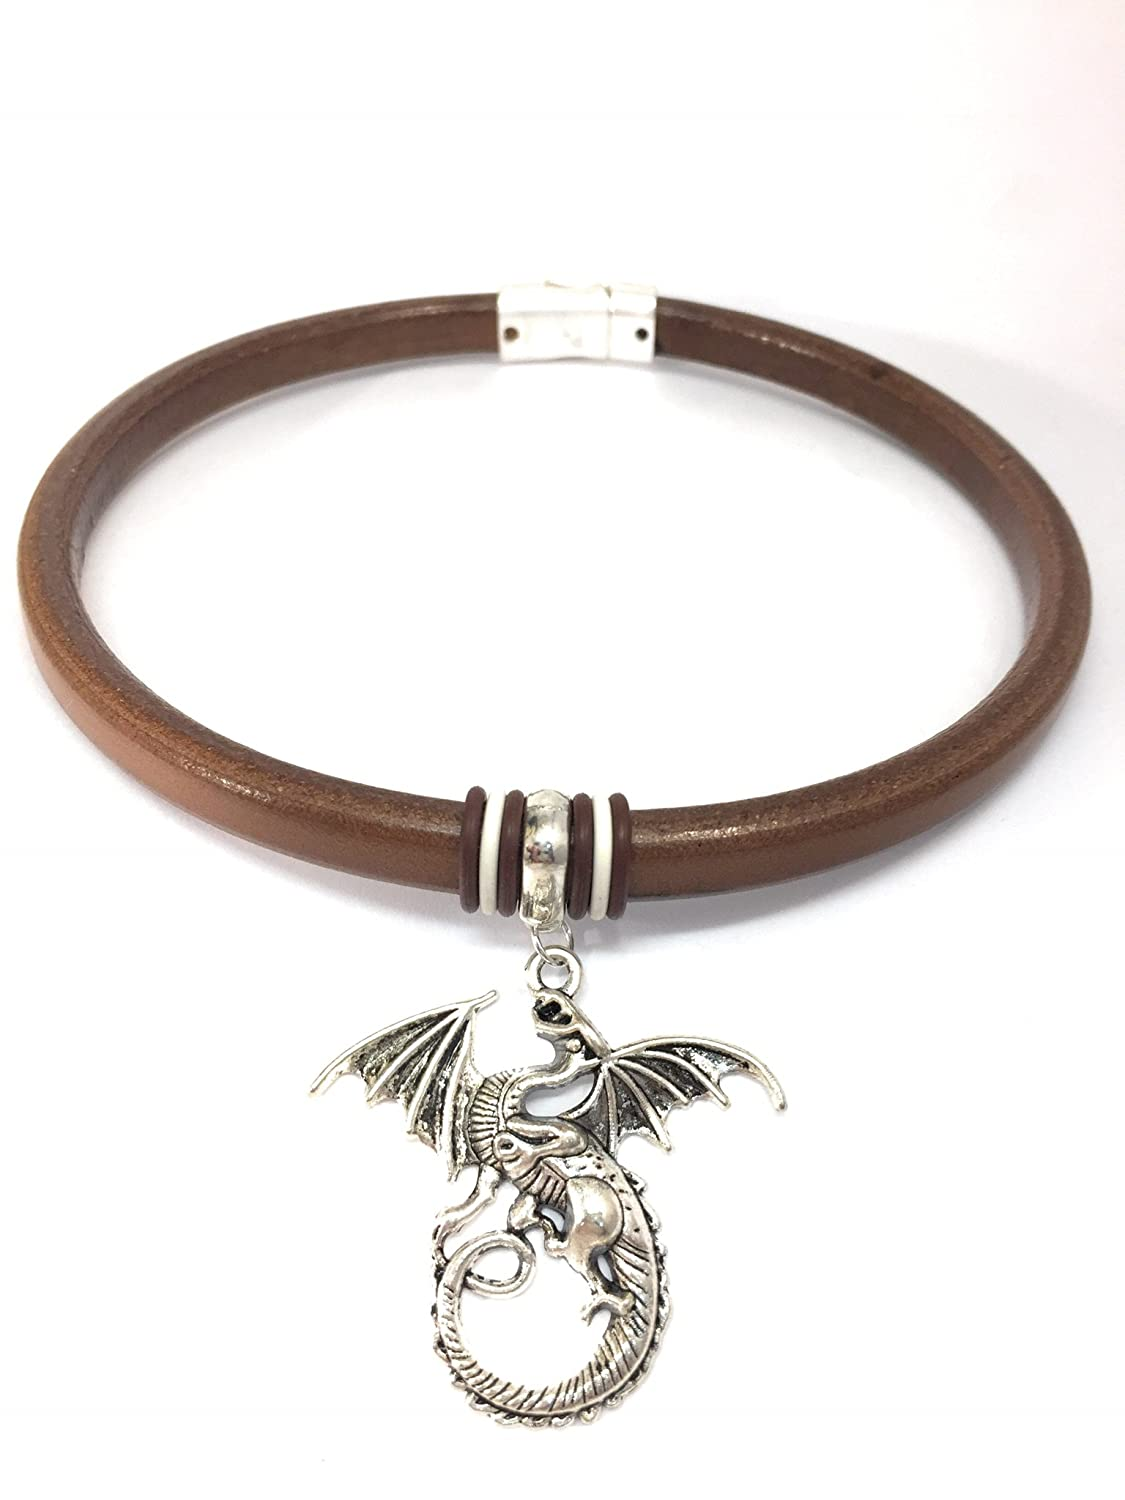 Handmade Brown Leather Choker with a Silver-Tone Dragon Pendant - DeluxeAdultCostumes.com